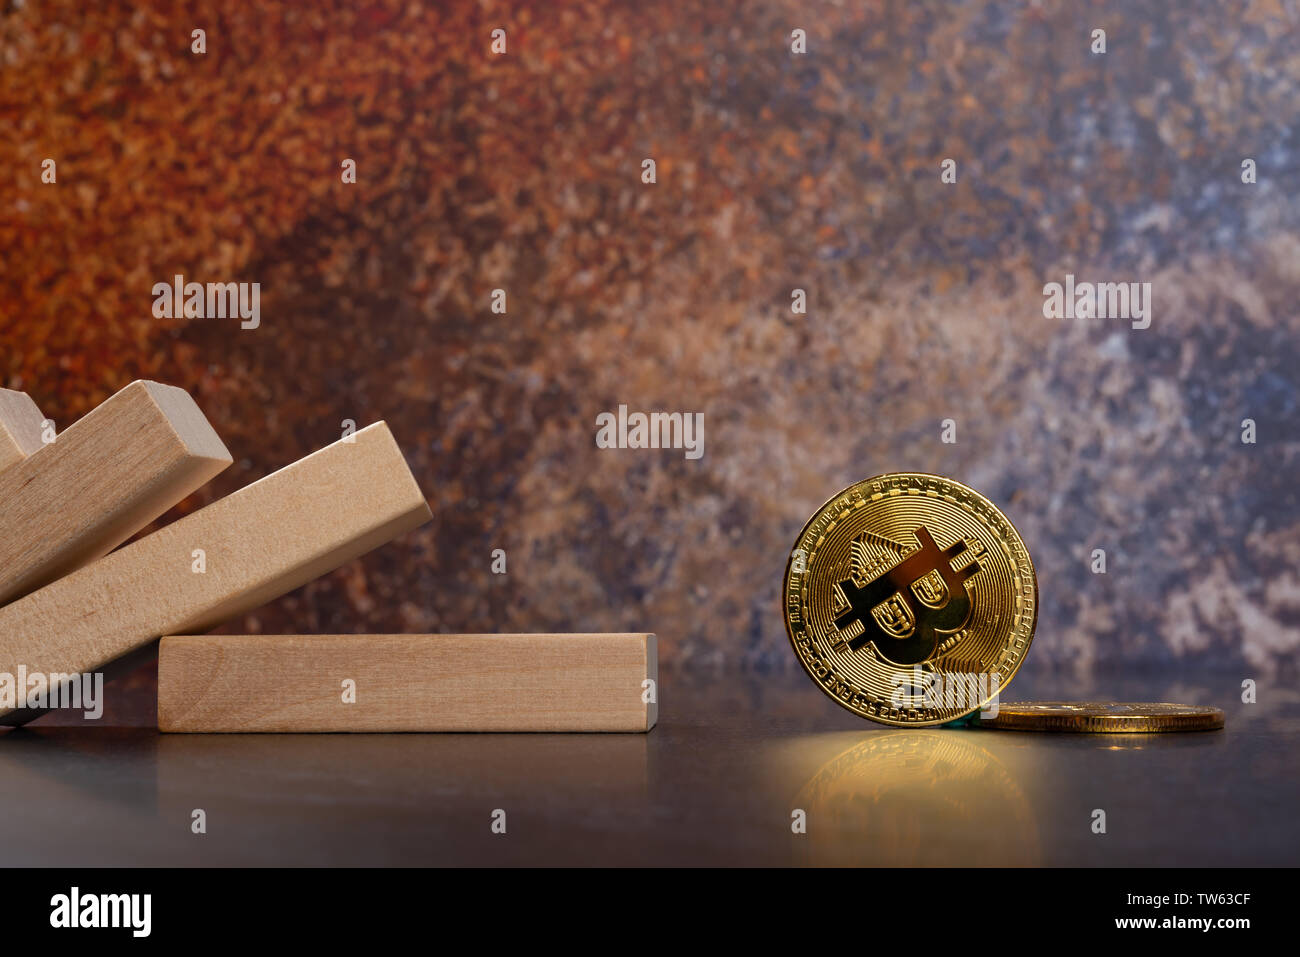 bitcoins fell down from domino blocks - Stock Image